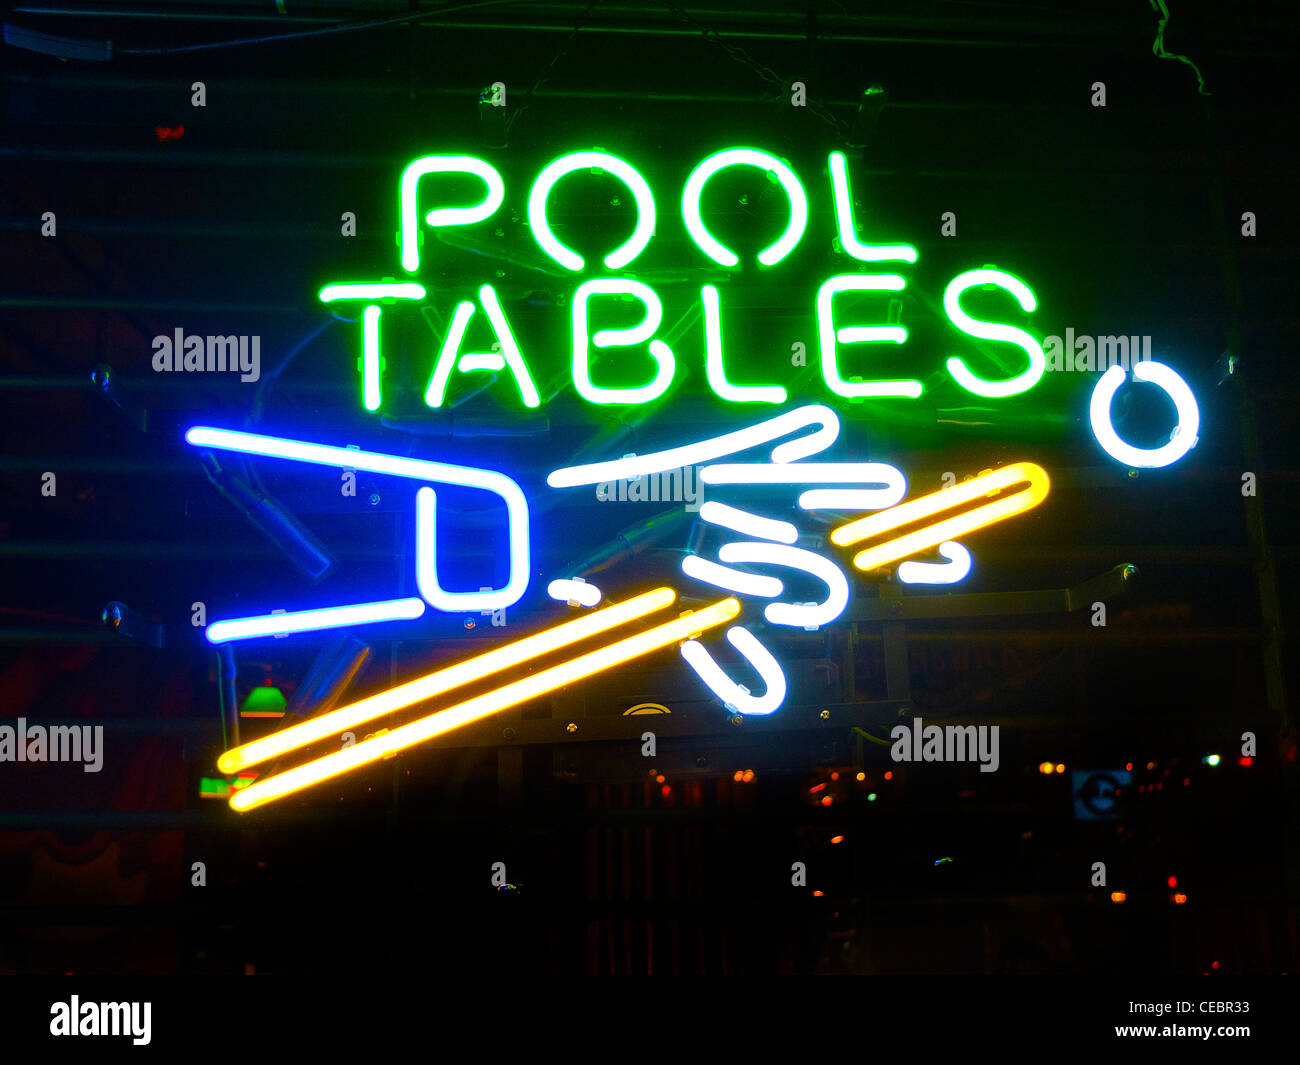 Pool Table Shop Stock Photos Pool Table Shop Stock Images Alamy - Neon pool table